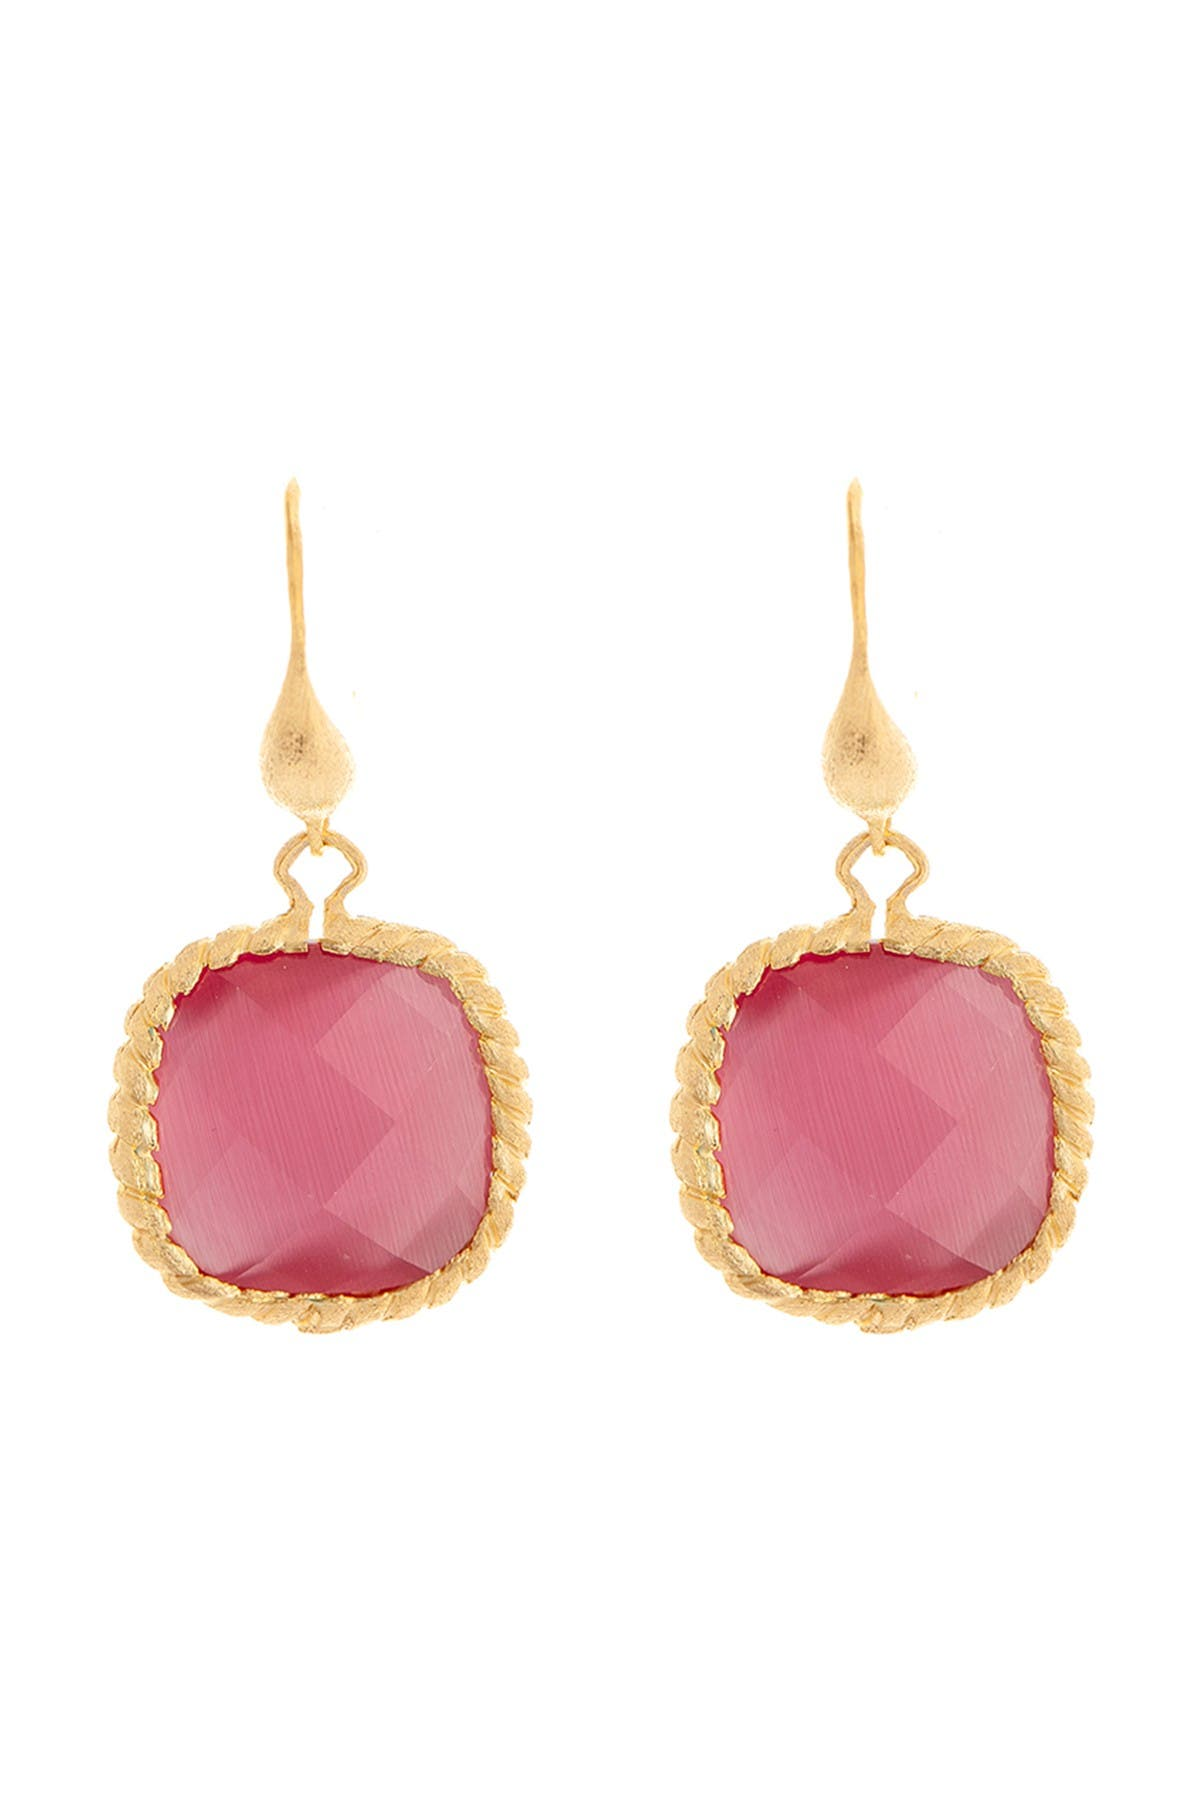 Image of Rivka Friedman 18K Gold Clad Twisted Cable Raspberry Cat's Eye Crystal Dangle Earrings